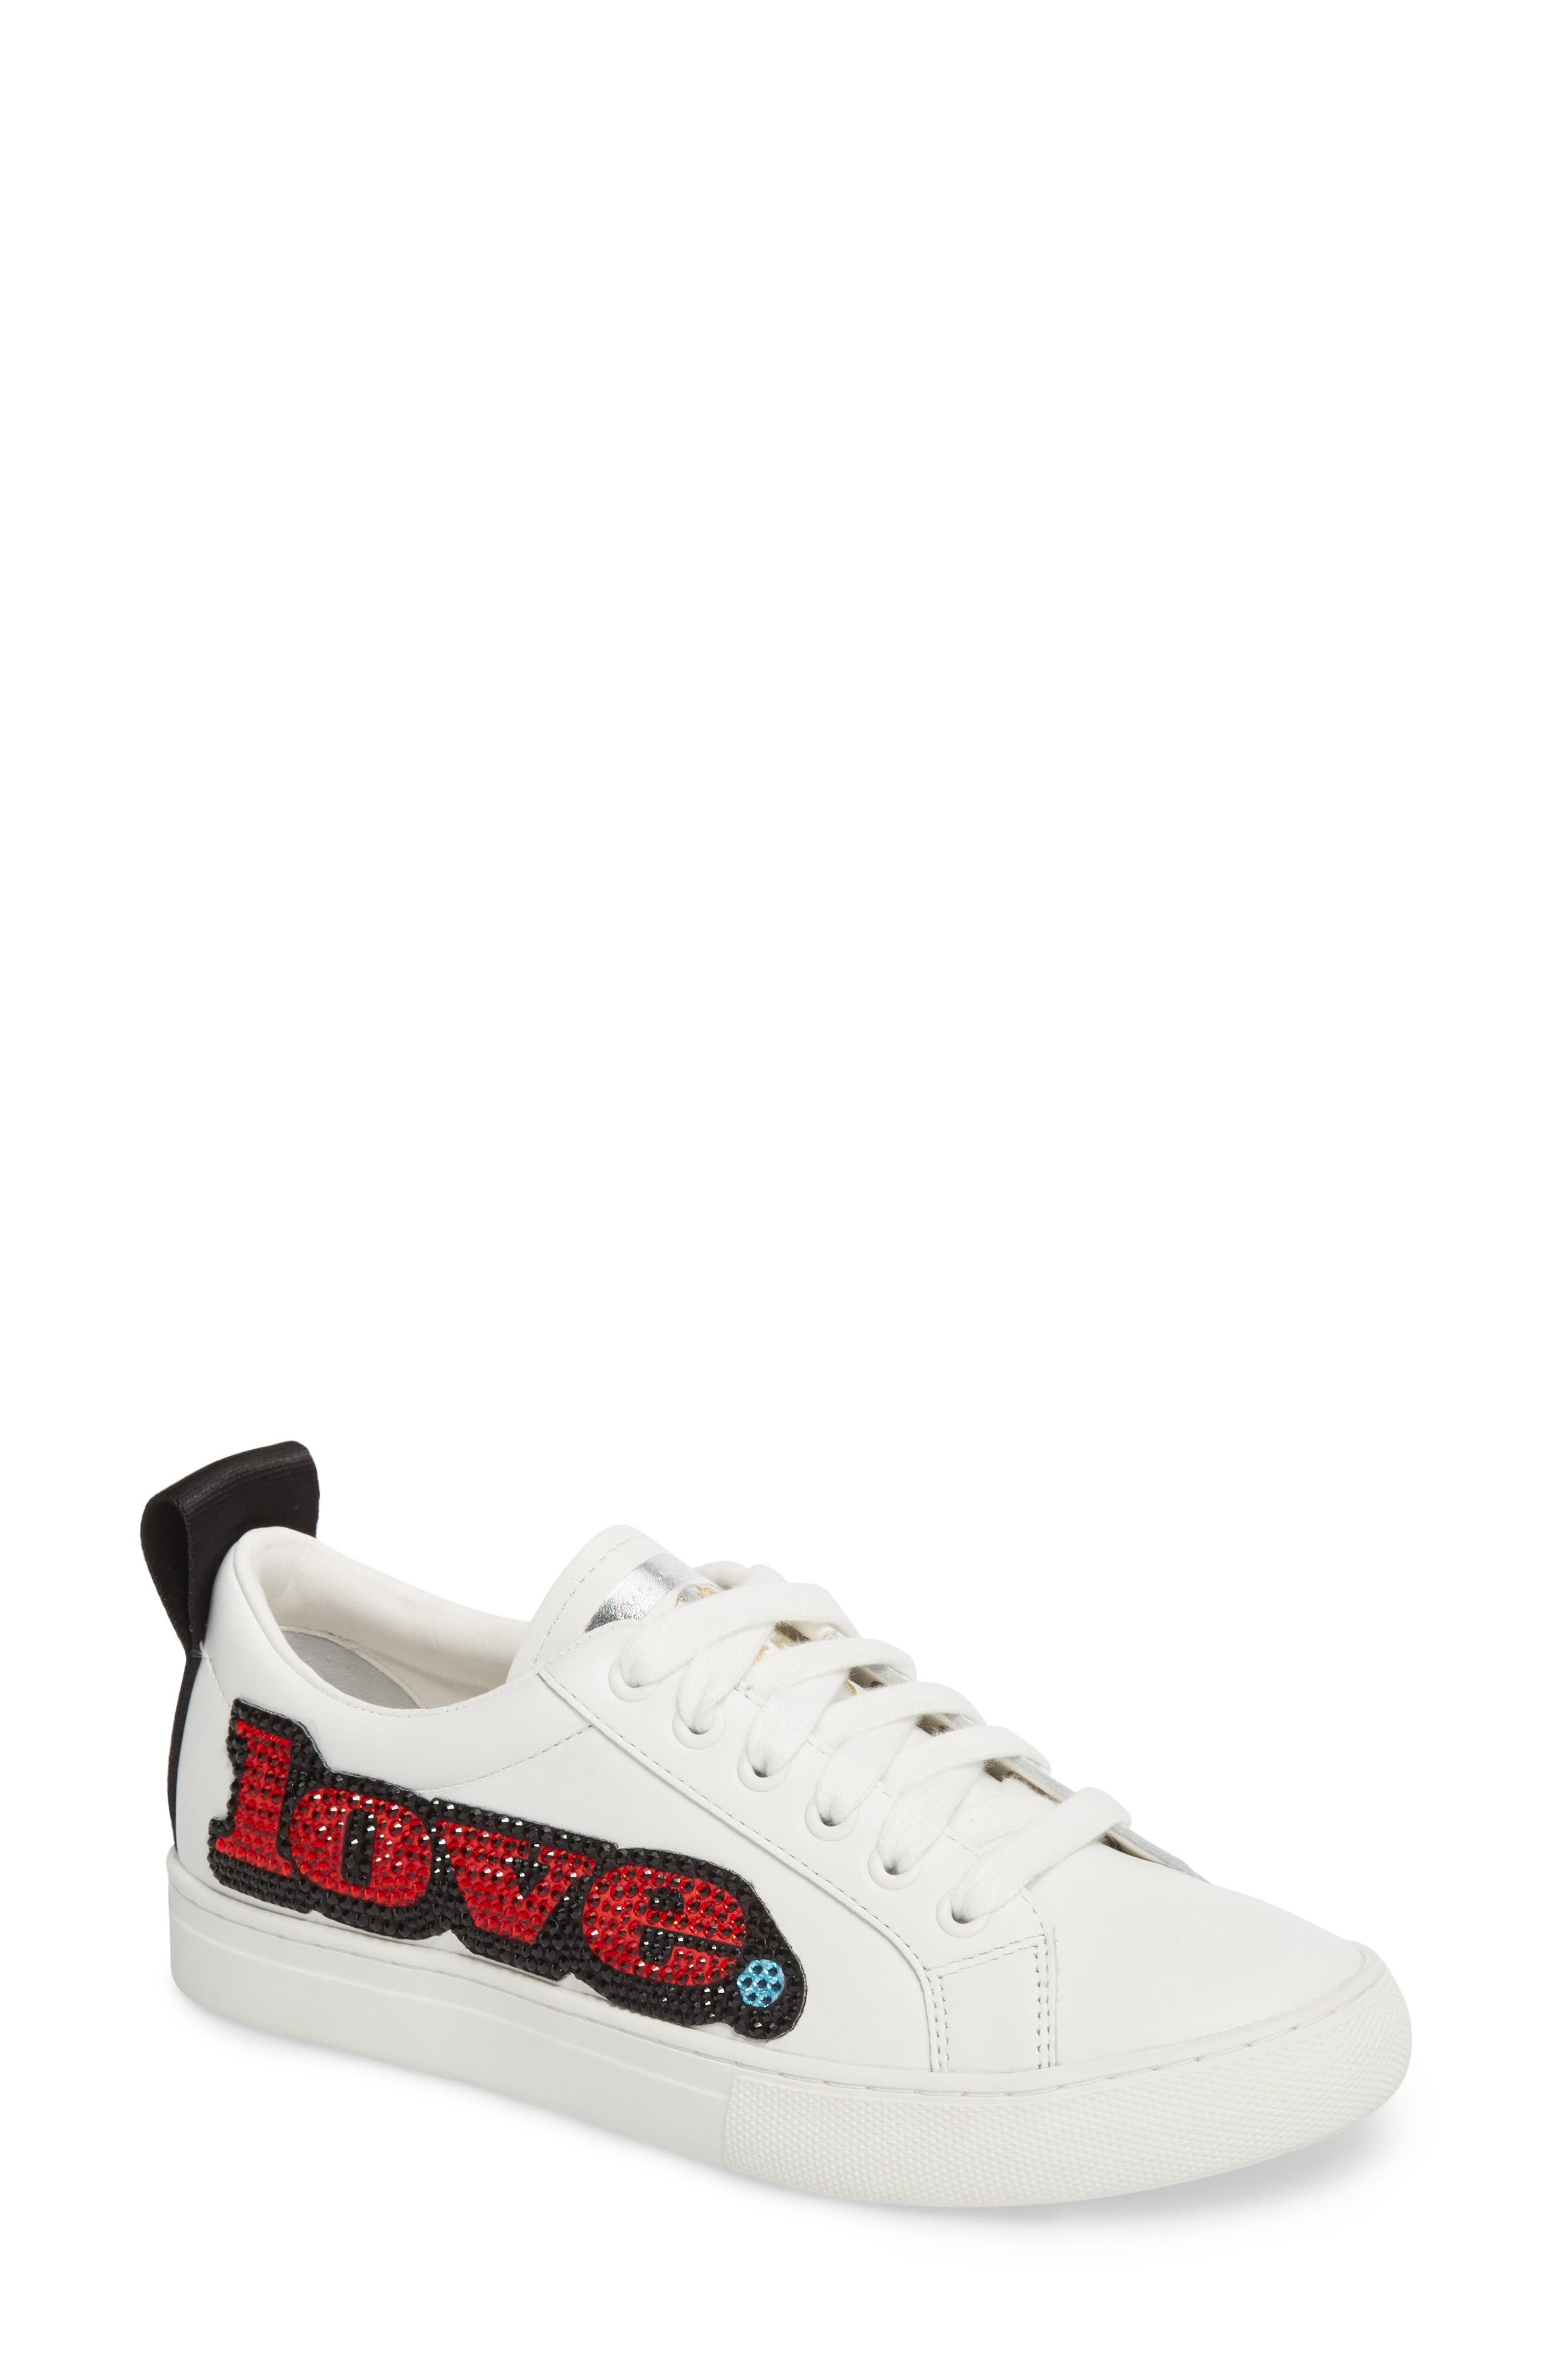 MARC JACOBS Empire Love Embellished Sneaker (Women)